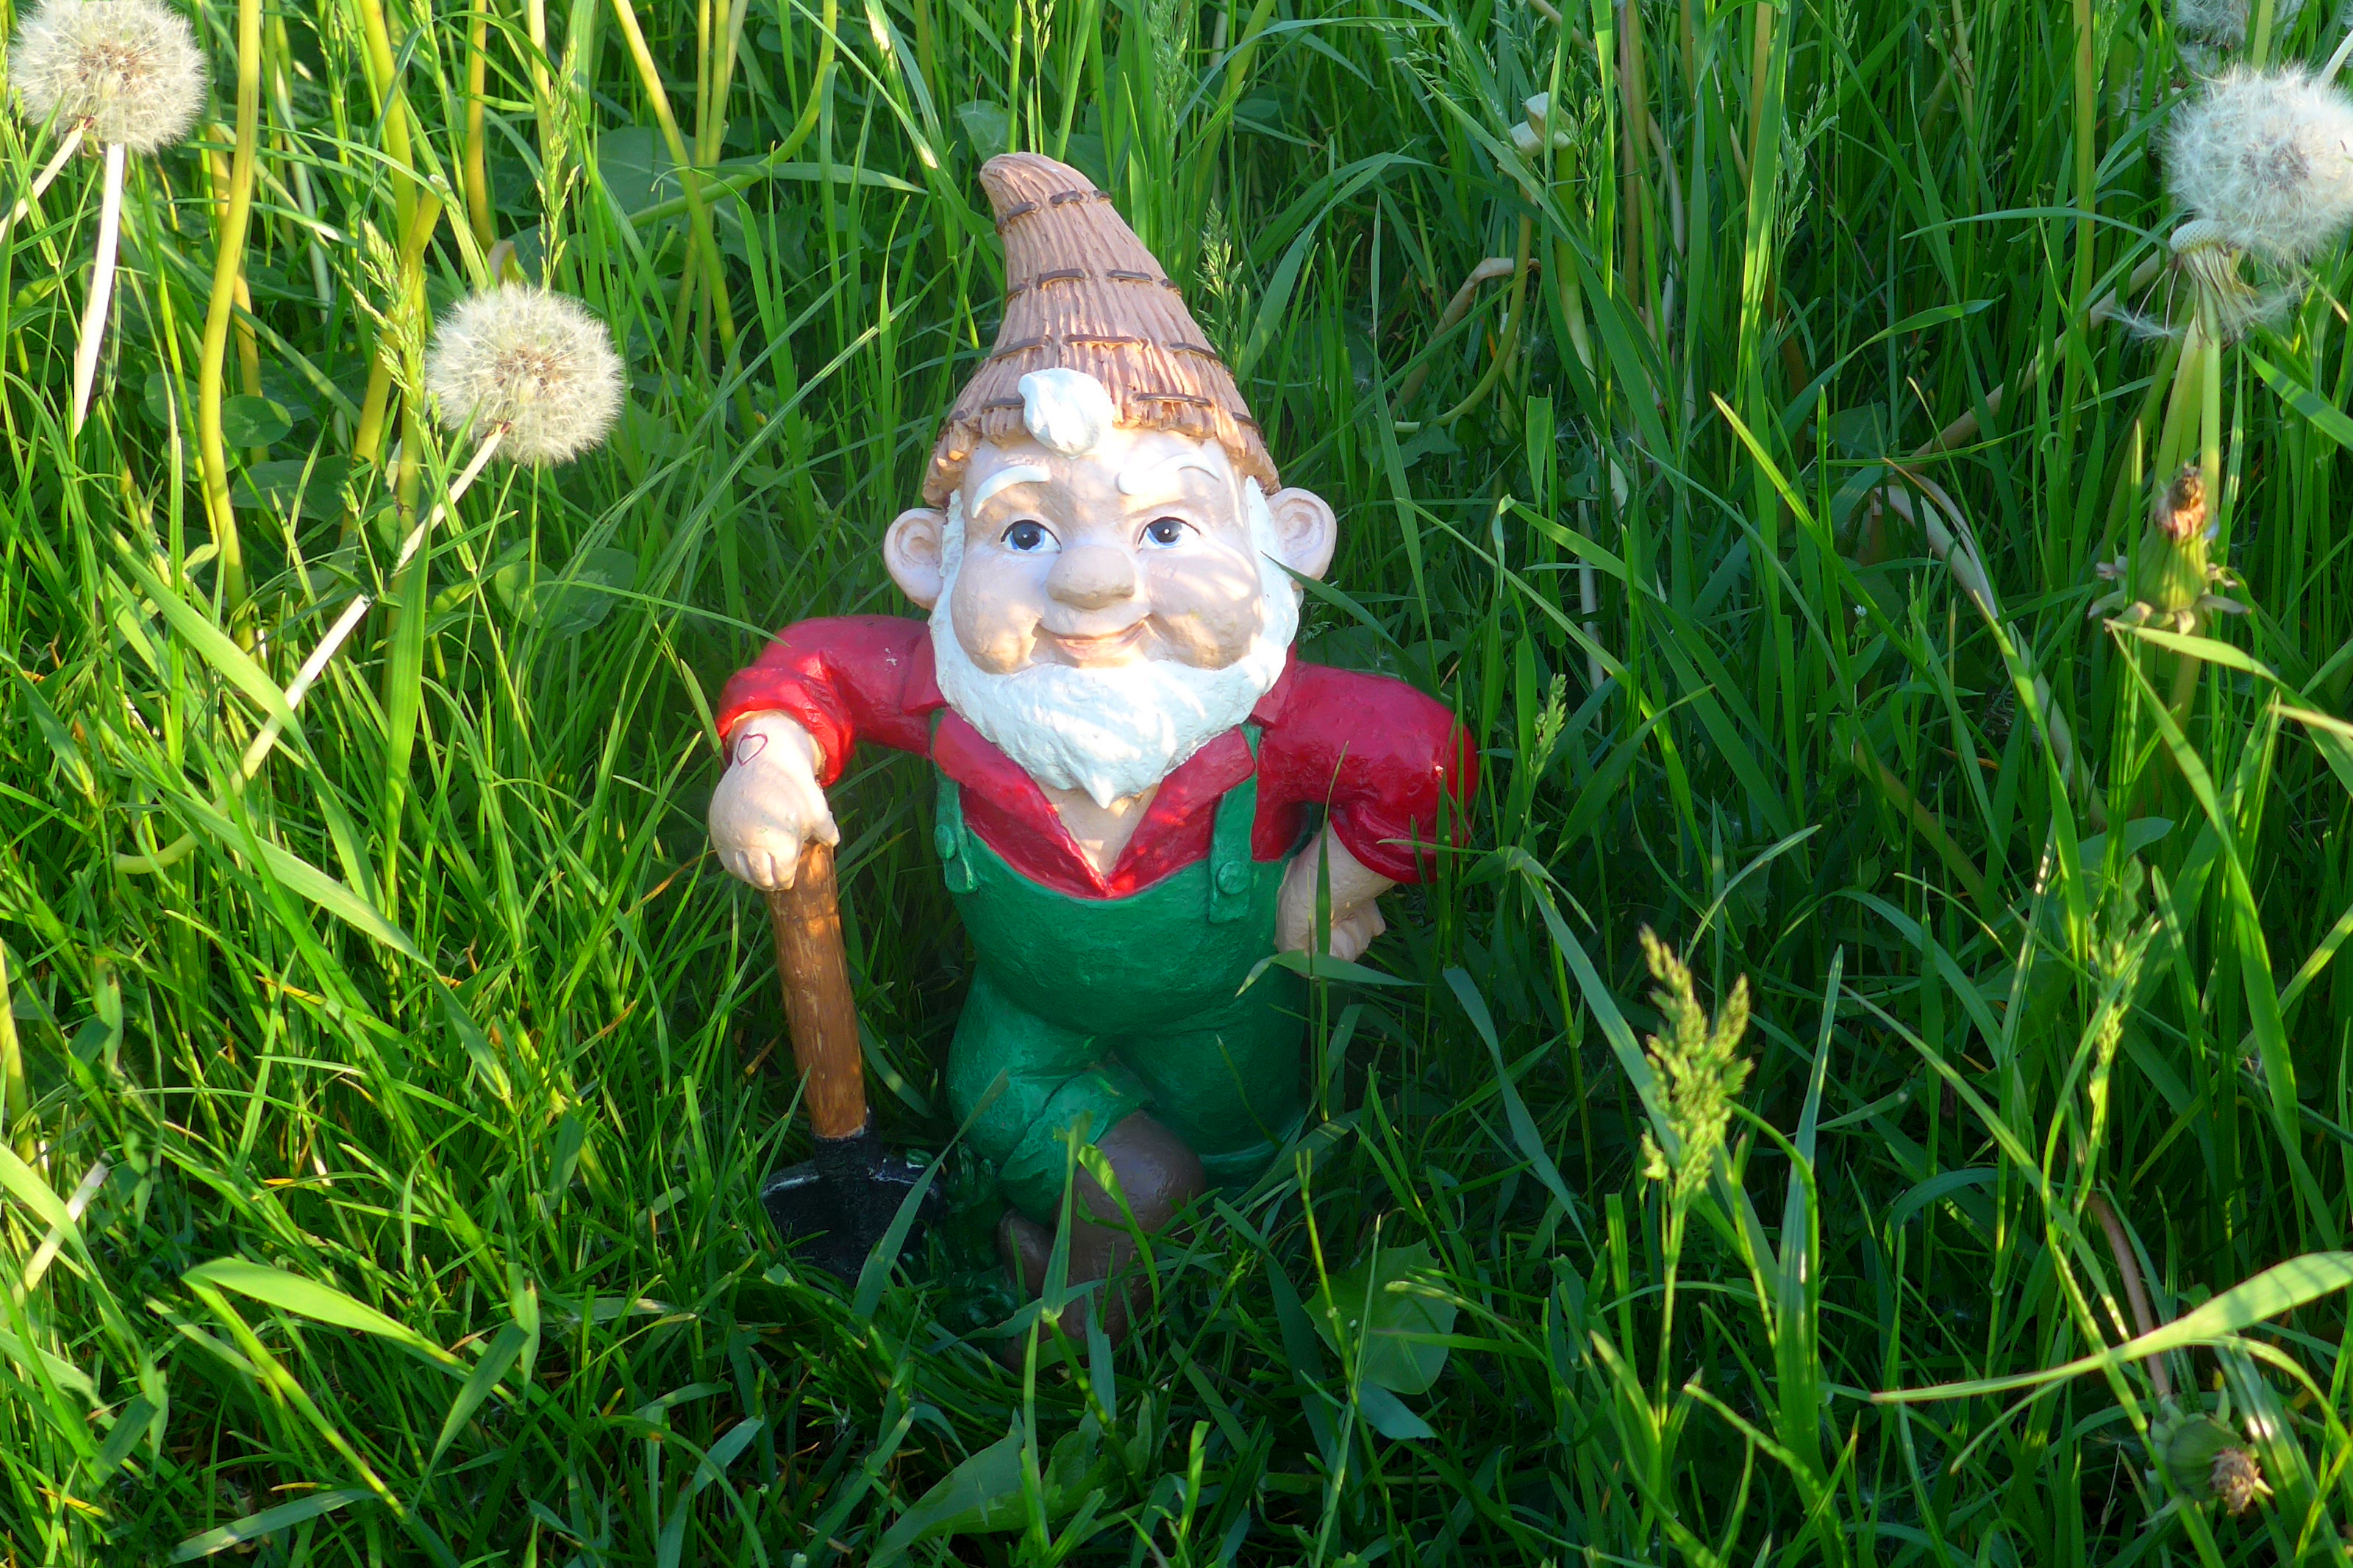 Lawn gnome in red shirt and green overalls leaning on axe